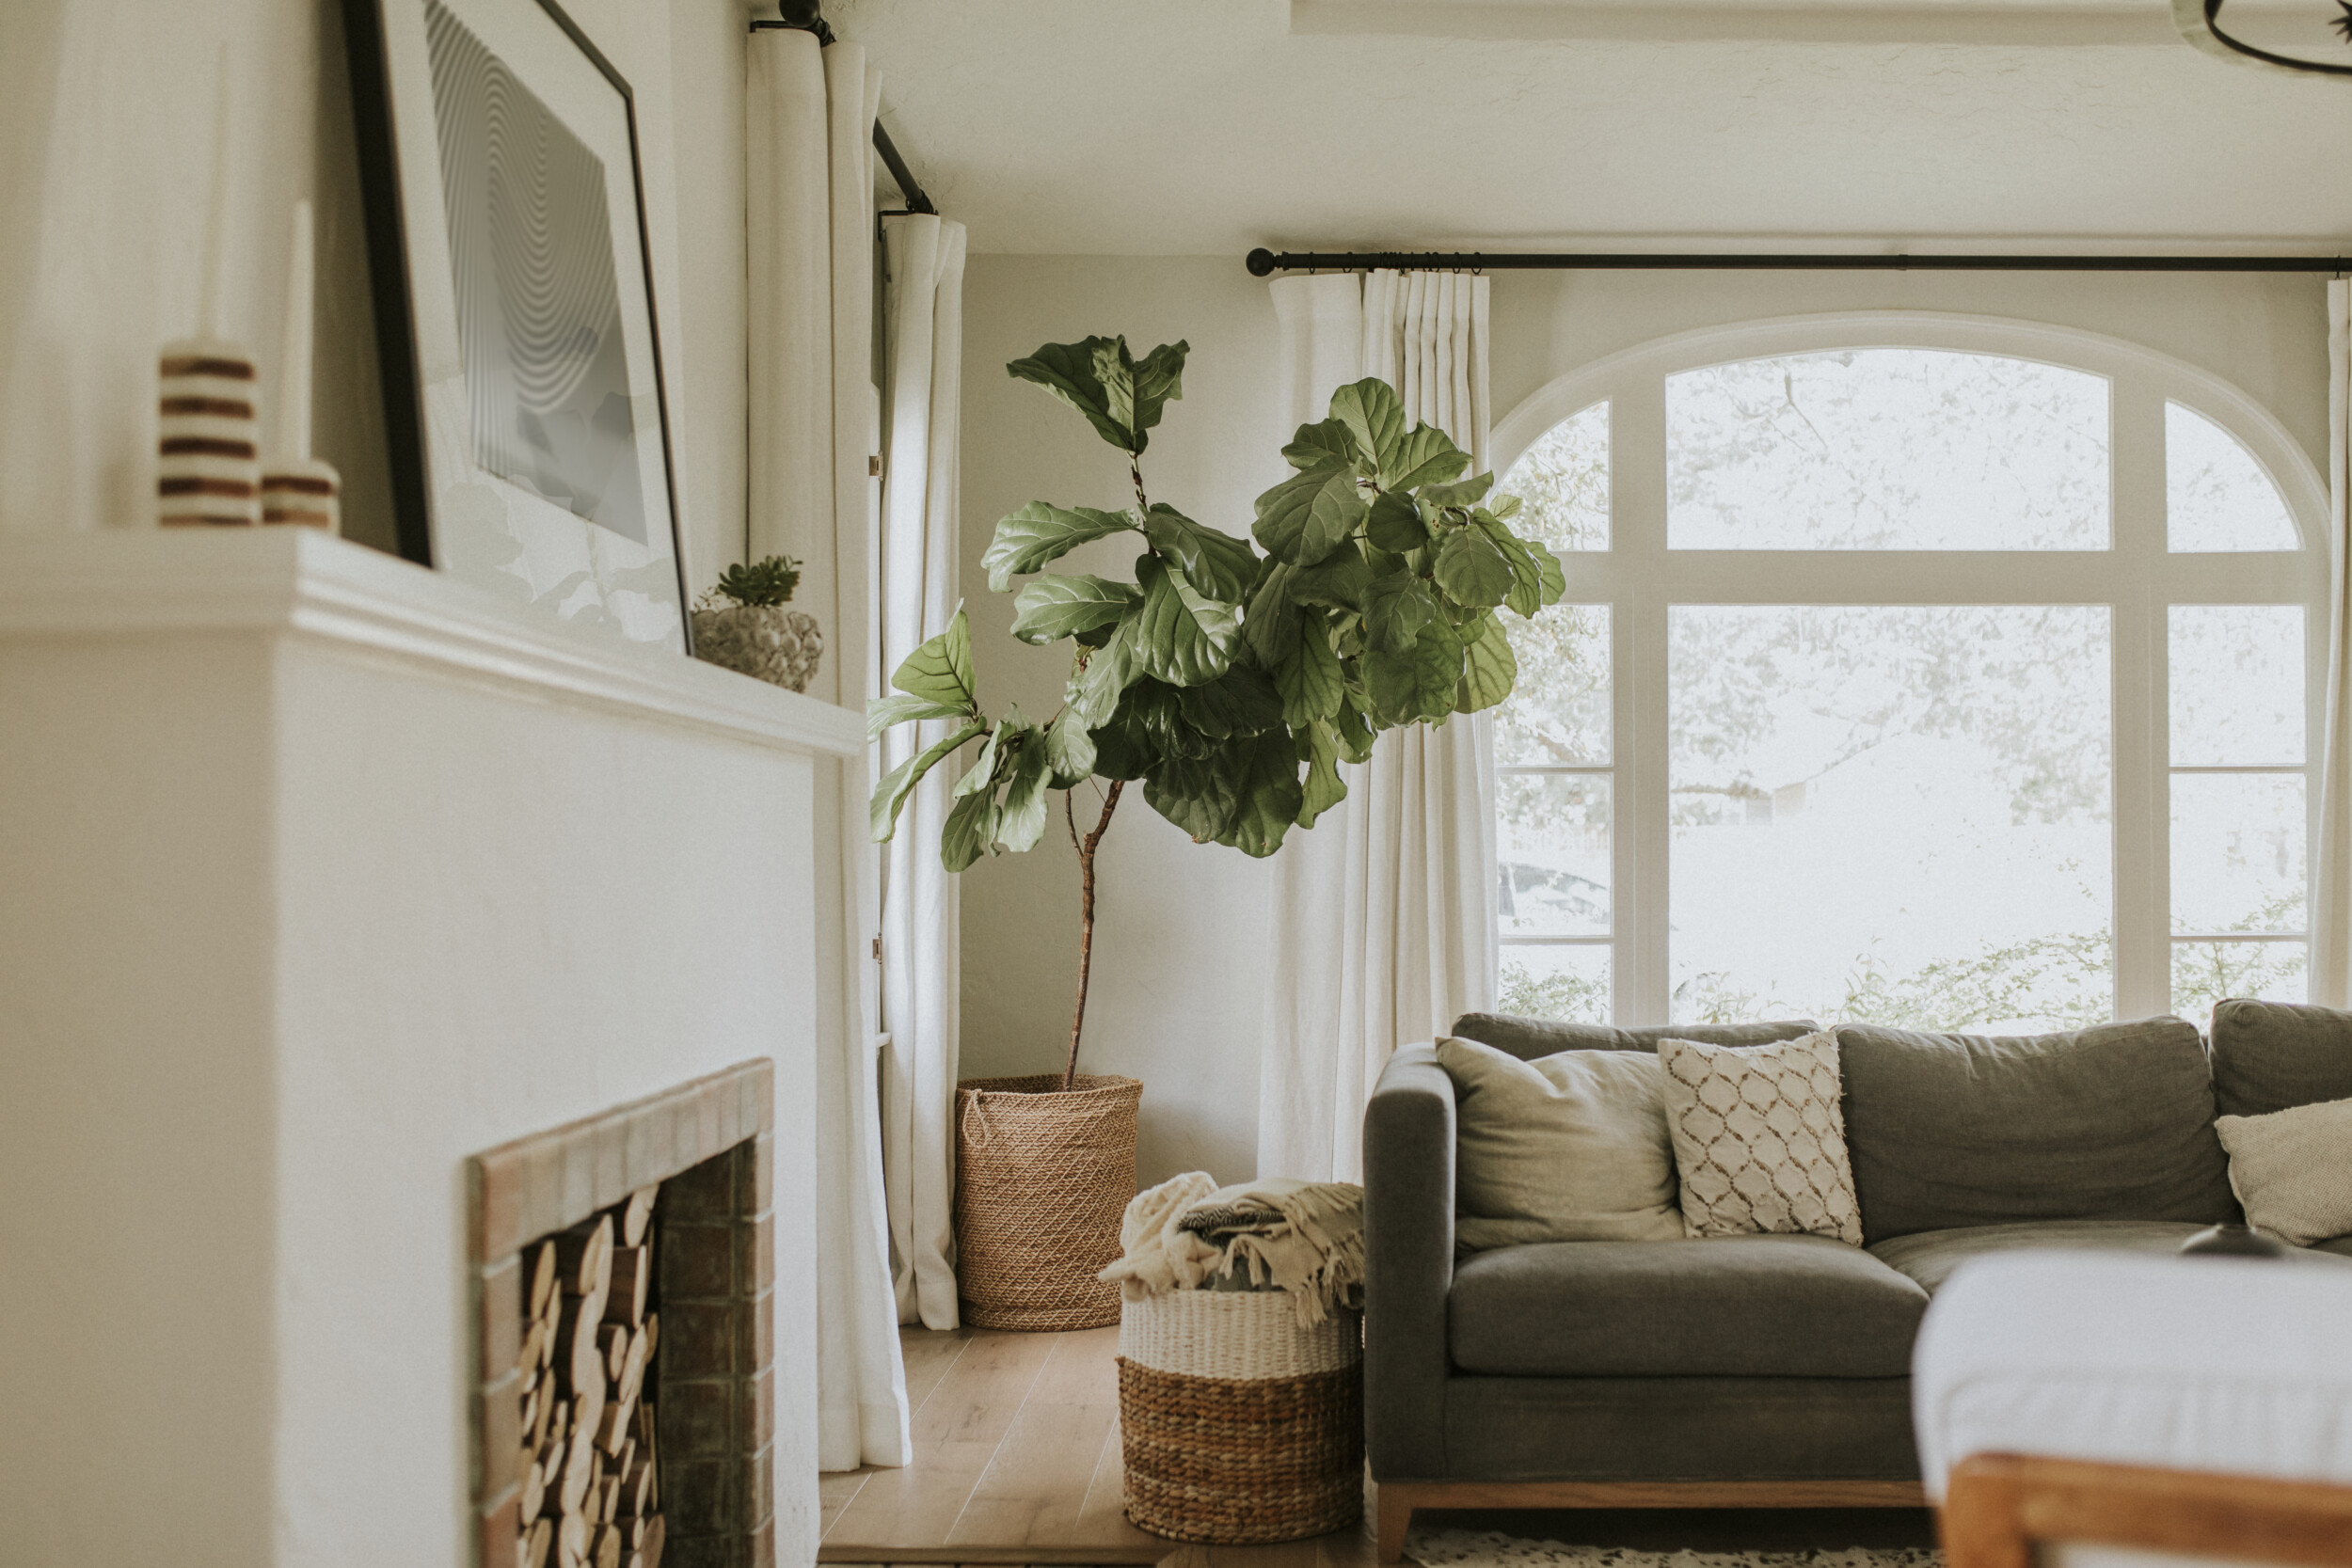 Cozy home living room with fireplace